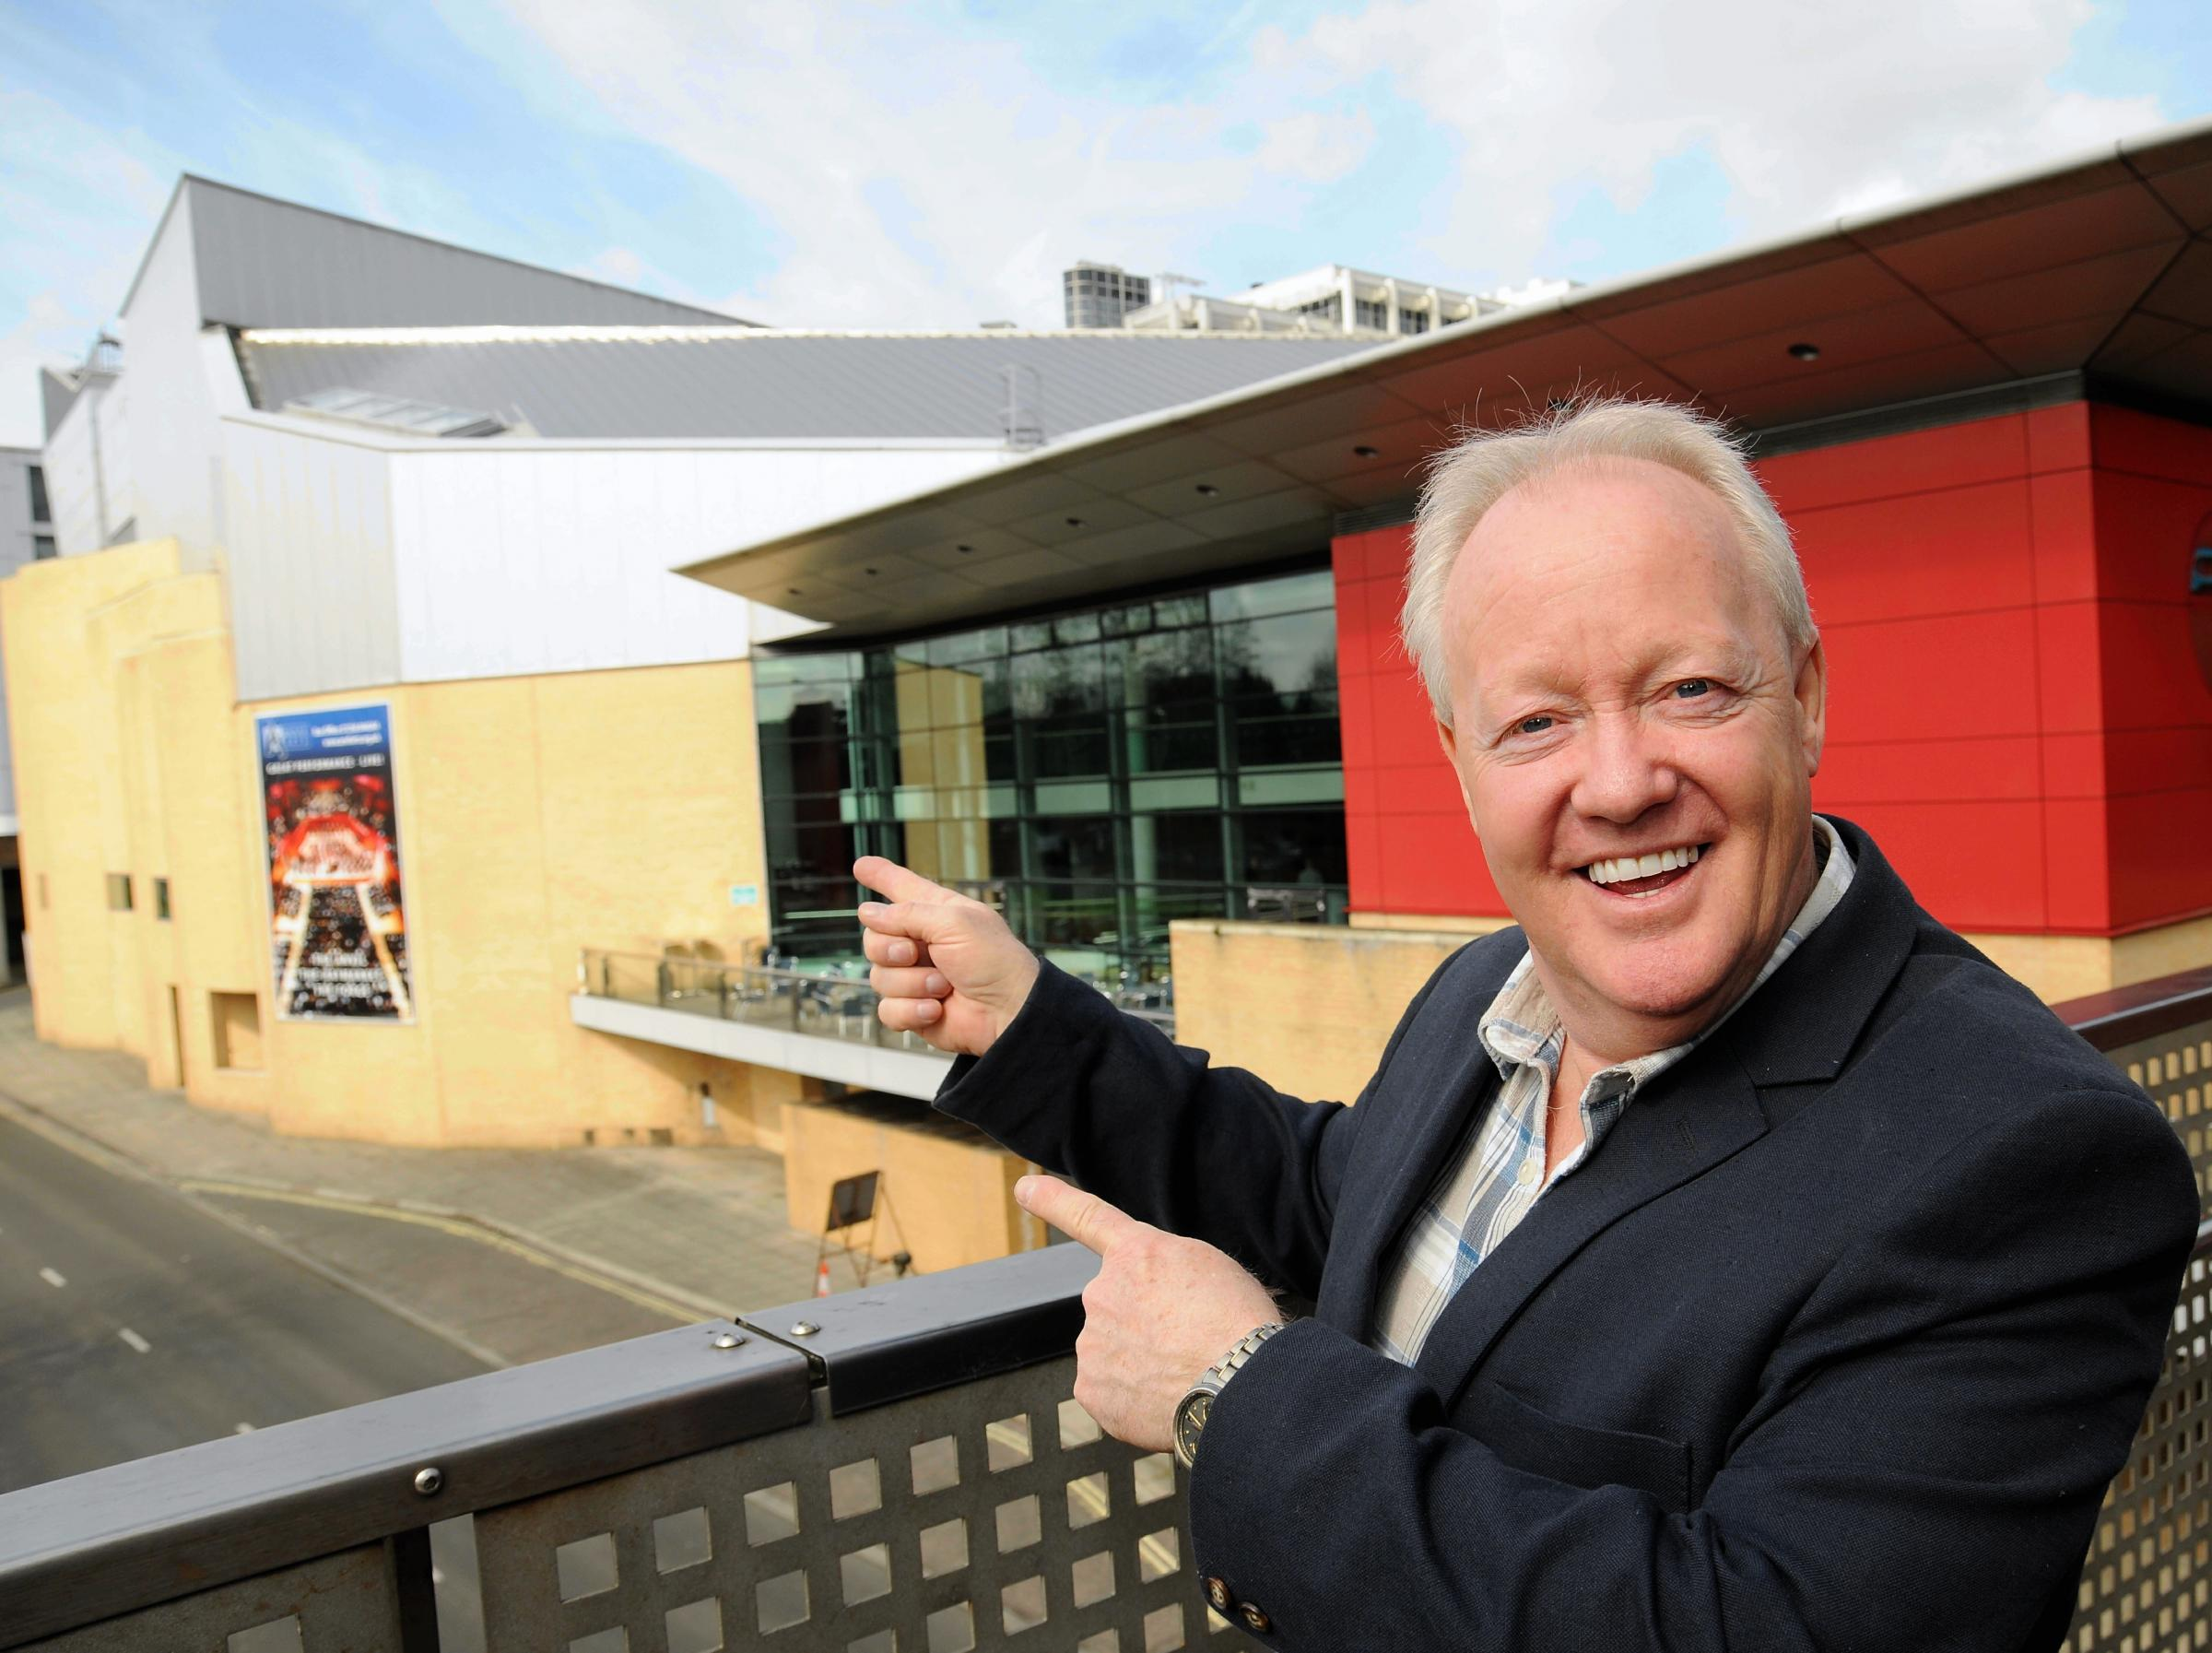 Keith Chegwin will be one of the stars to appear in Cinderella at The Anvil this year